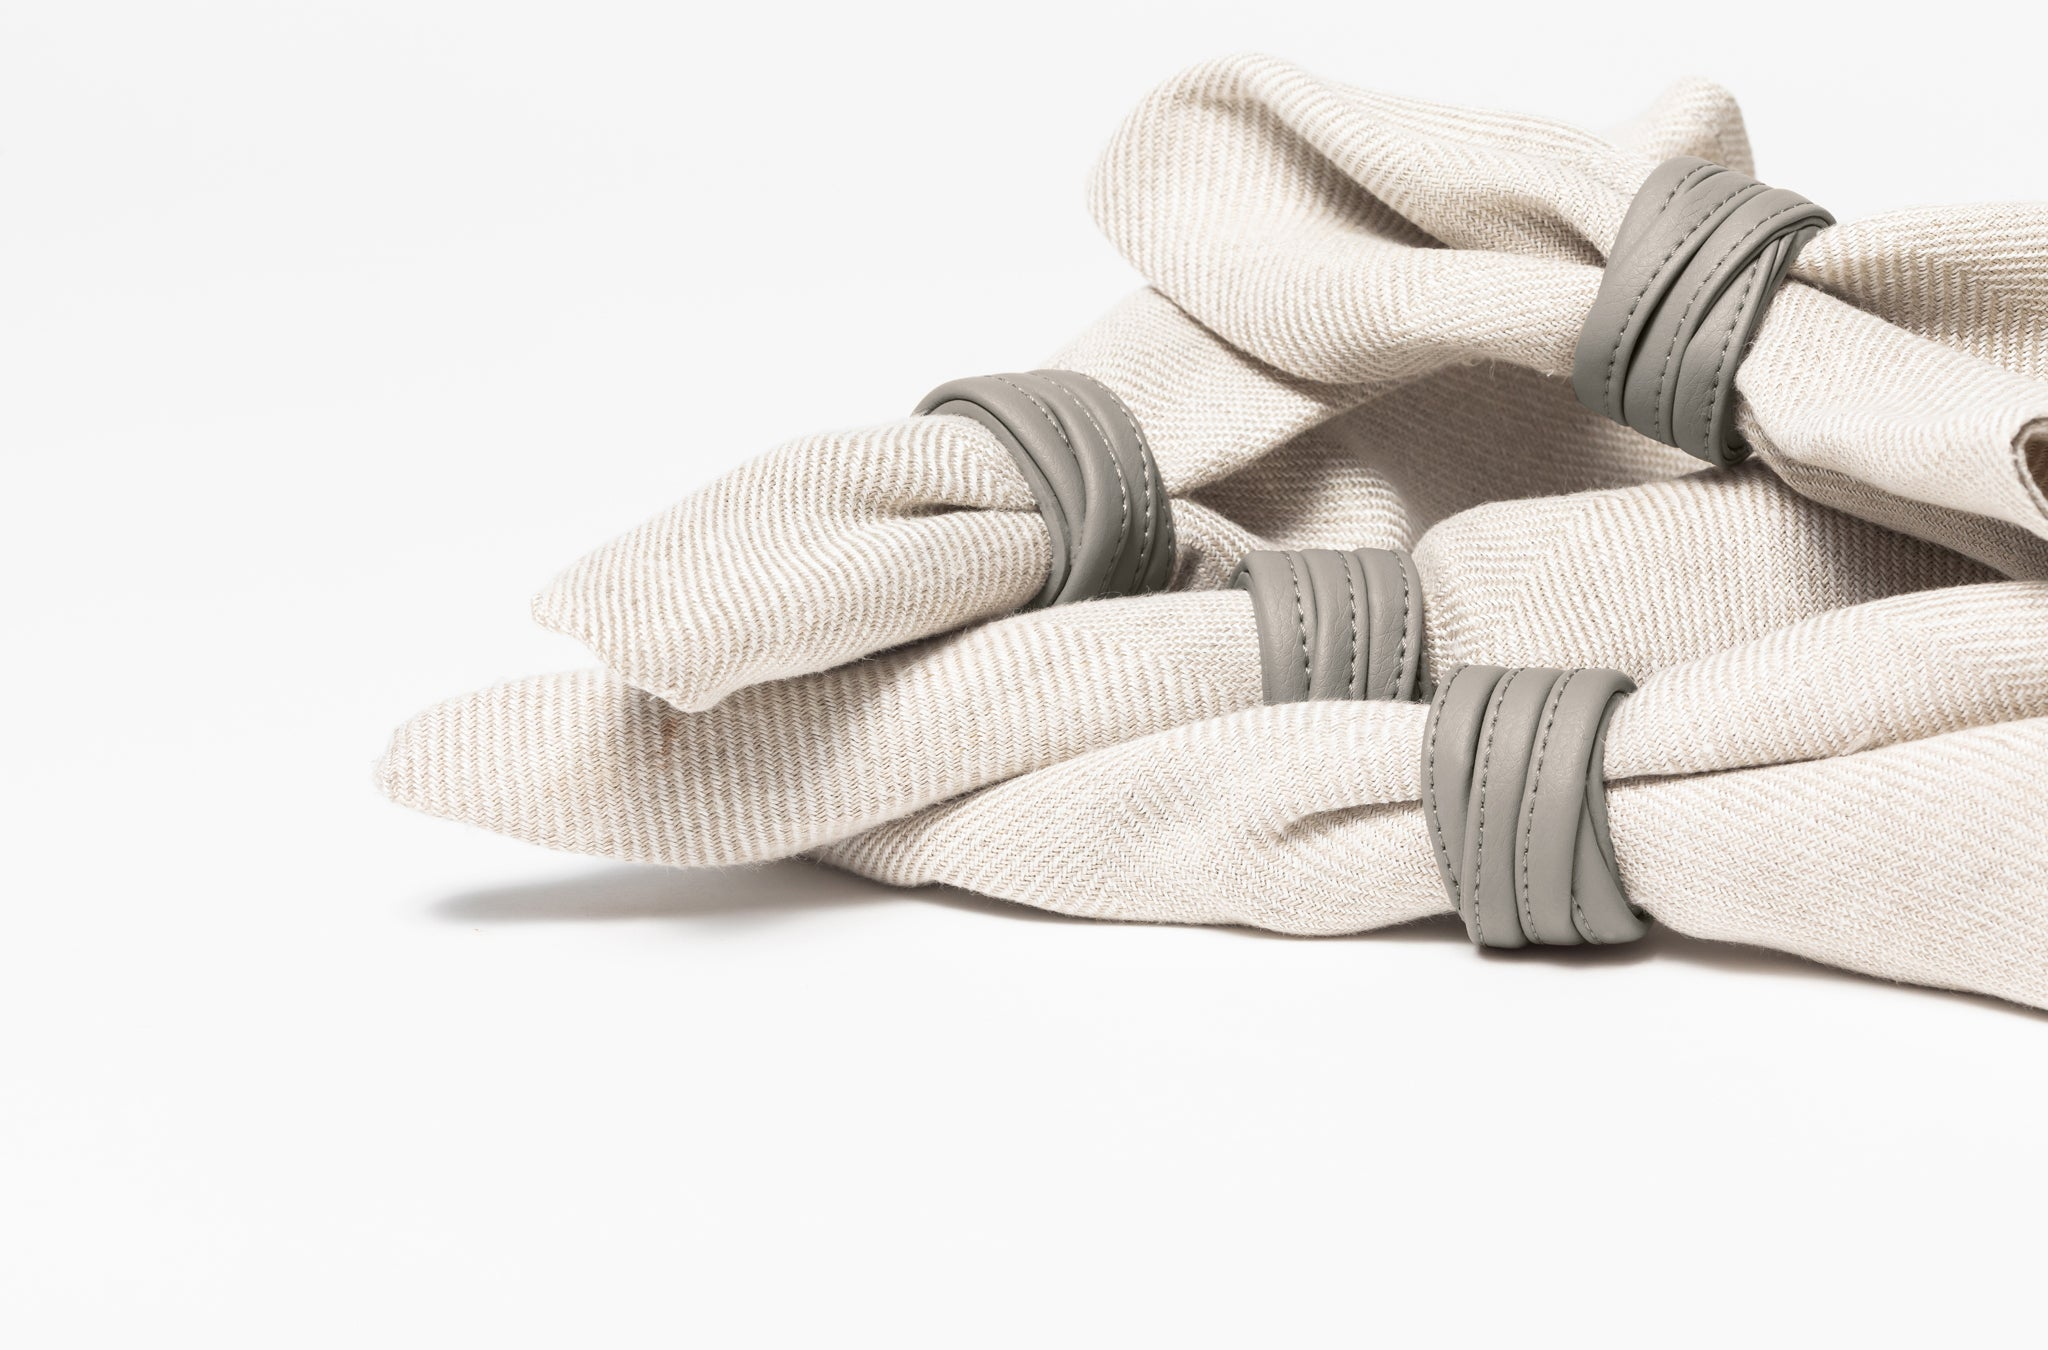 The Napkin Rings in Technik-Leather in Stone